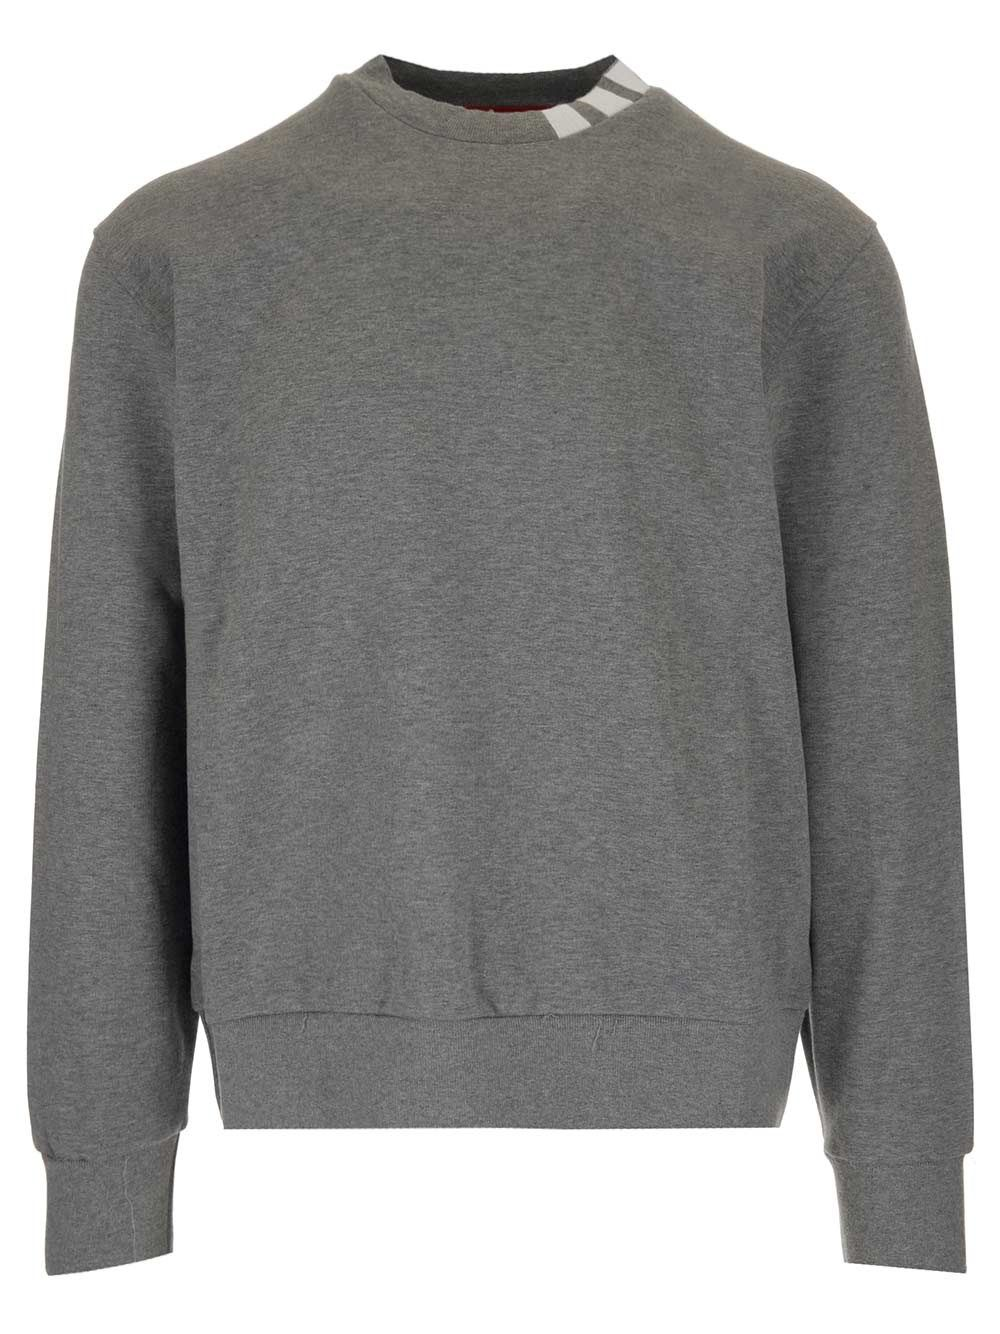 Thom Browne THOM BROWNE MEN'S GREY COTTON SWEATSHIRT